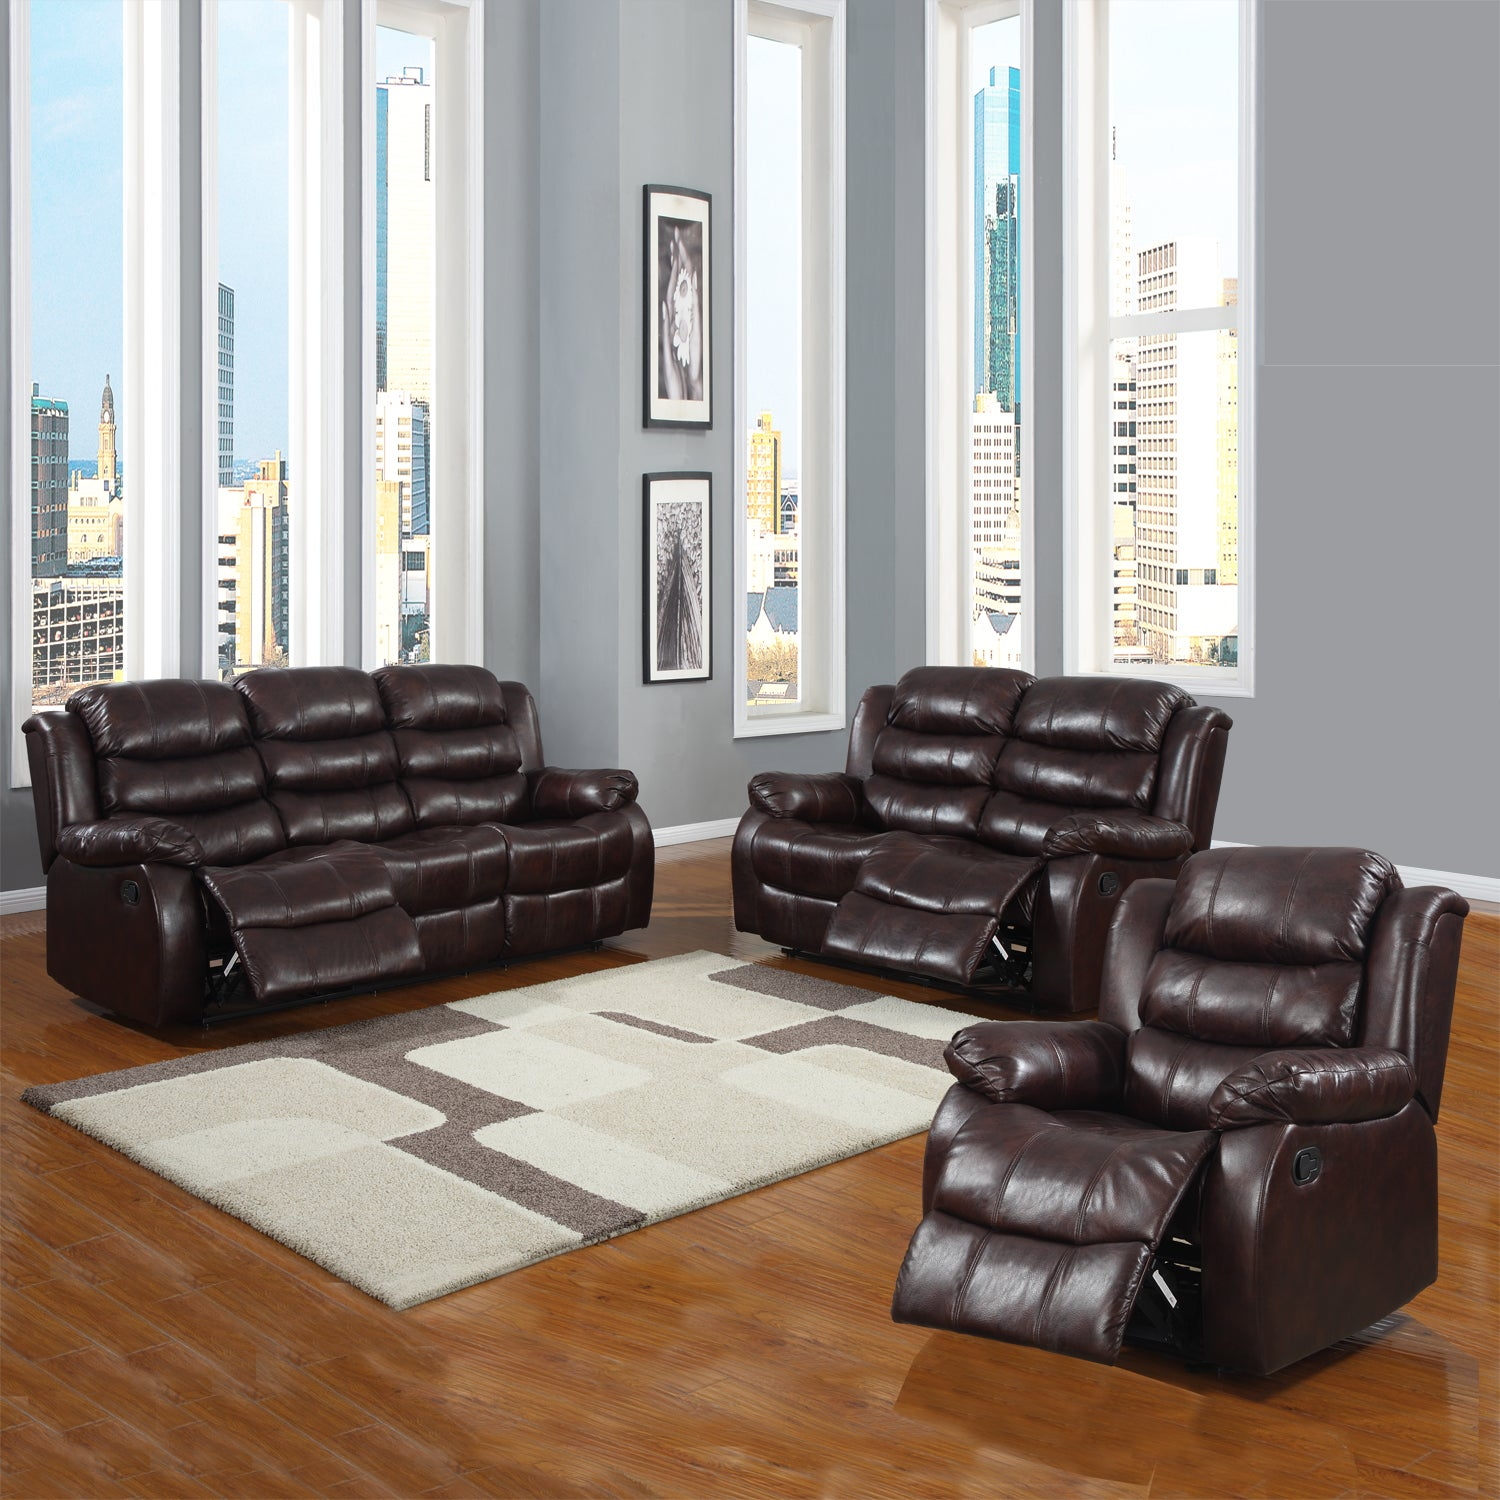 buxton burgundy polished microfiber 3-piece reclining living room